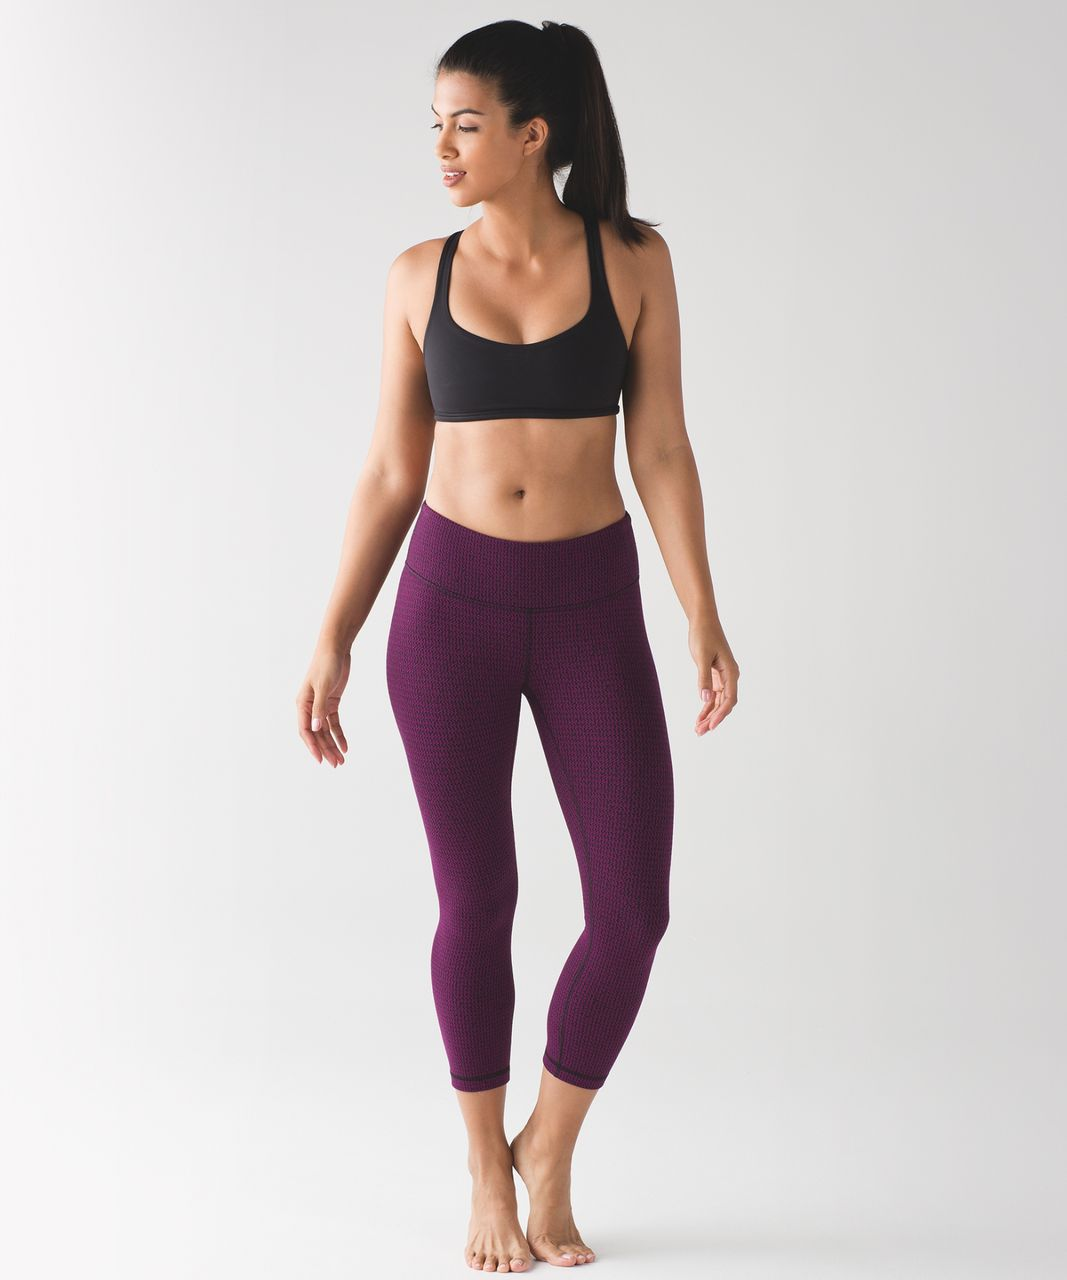 Lululemon Wunder Under Crop III - Teeny Tooth Deep Fuchsia Black